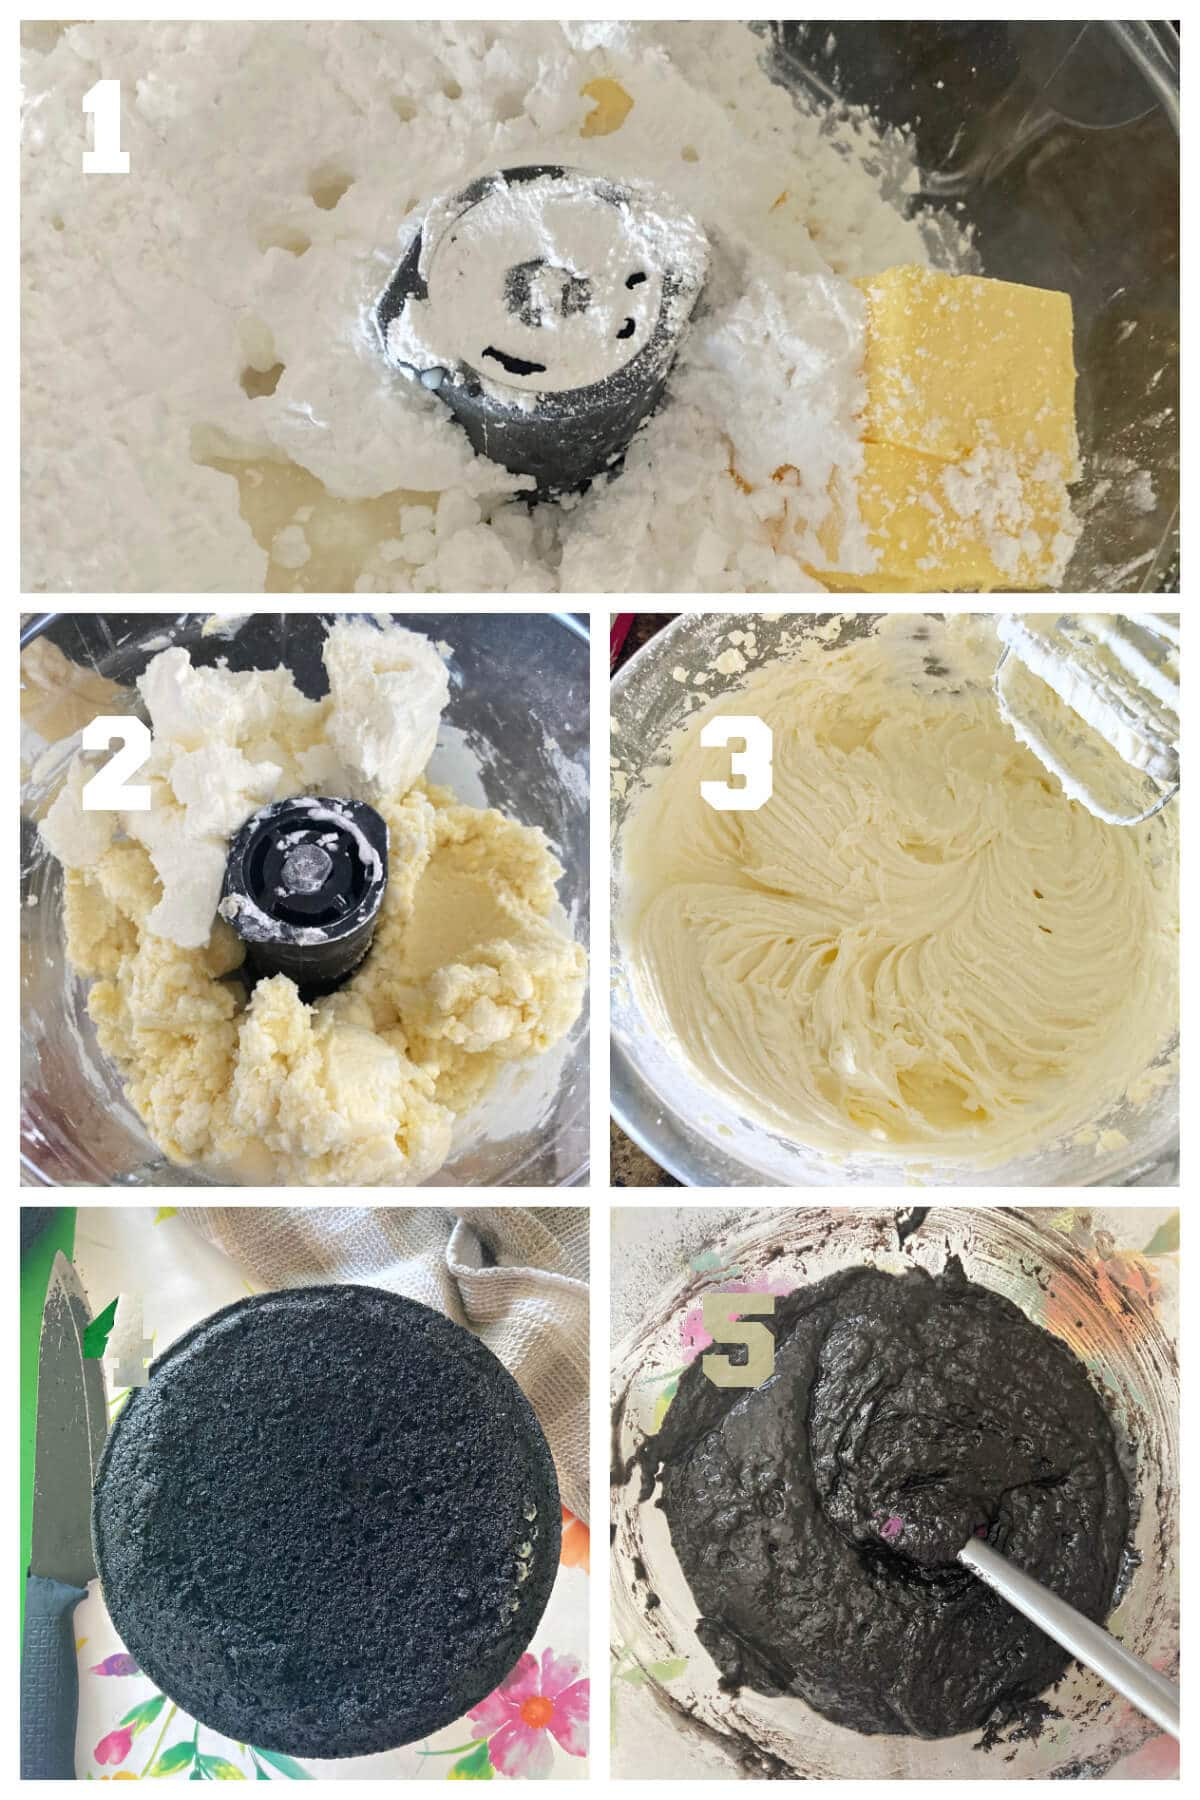 Collage of 5 photos to show how to make the cream cheese buttercream frosting and decorate the black velvet cake